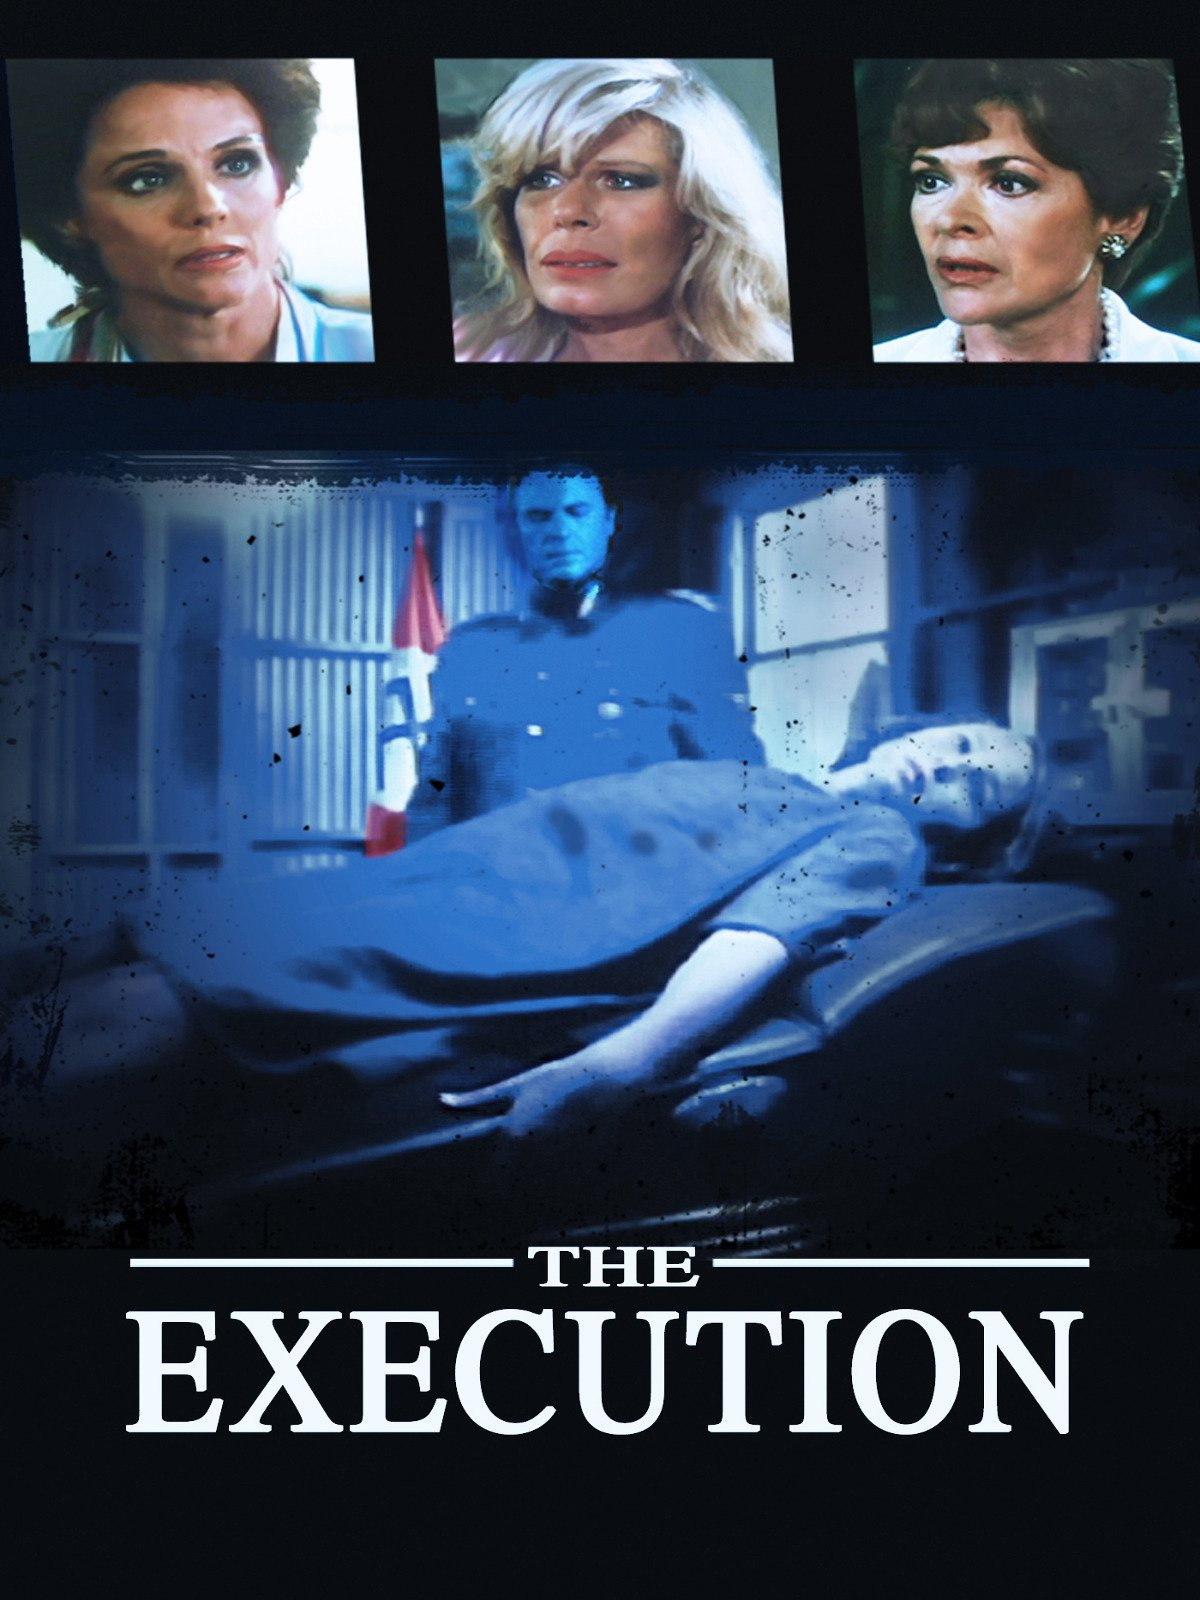 The Execution